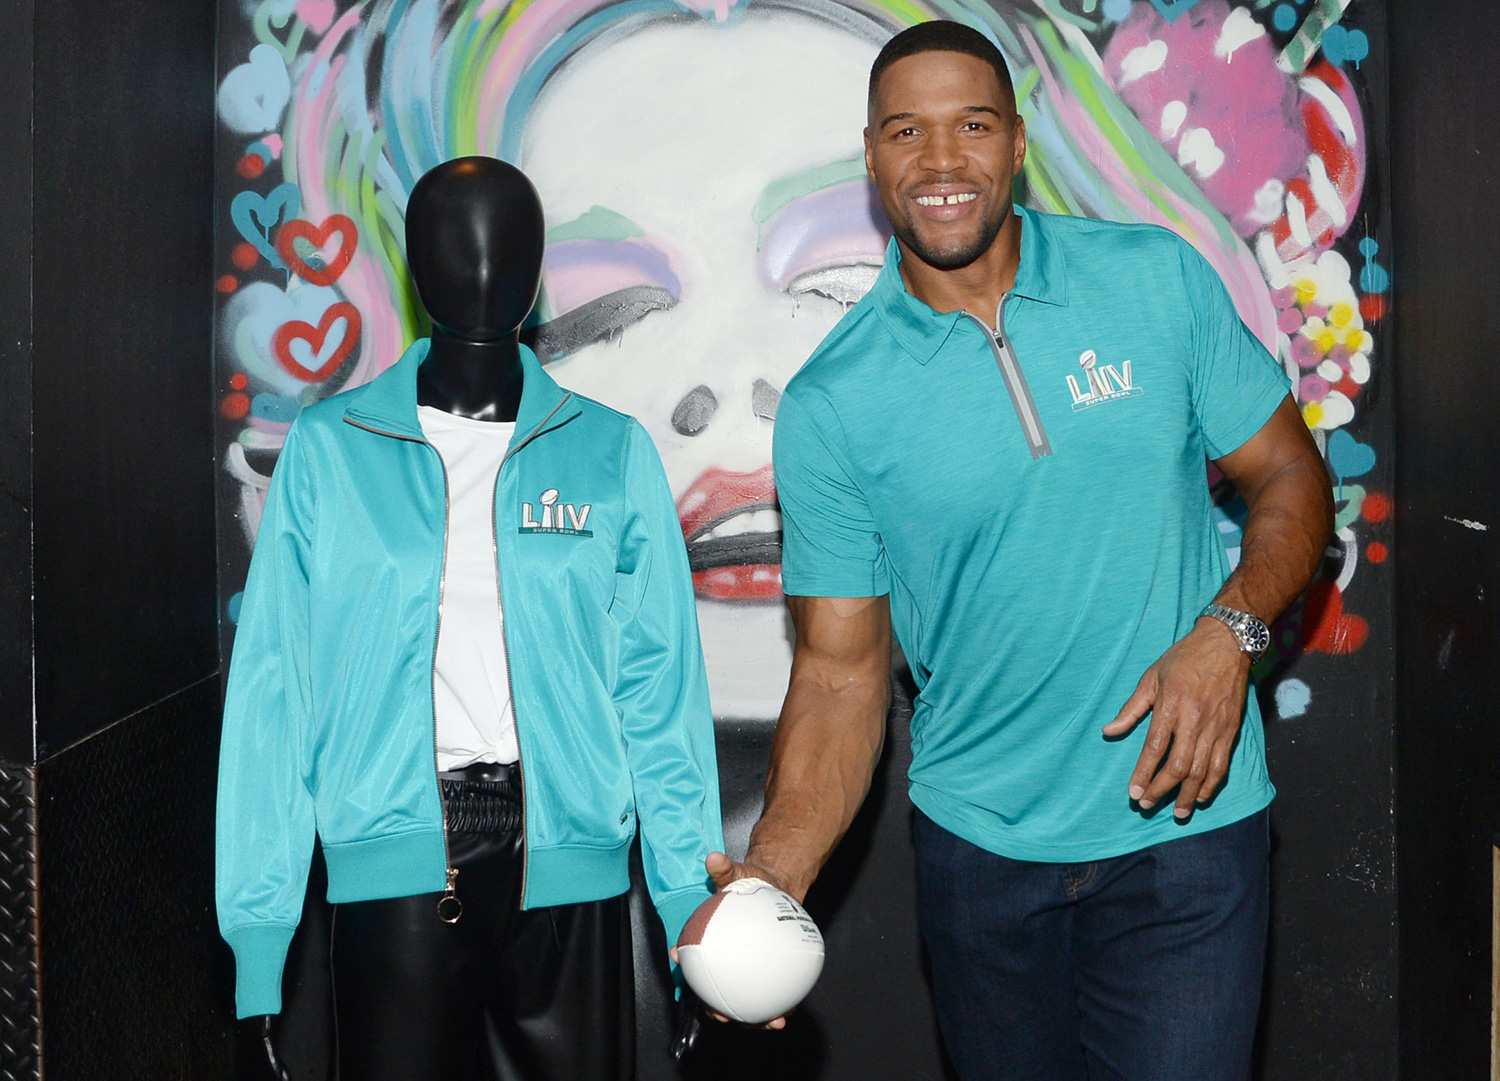 Football Hall of Famer and Good Morning America co-host Michael Strahan at the launch party to celebrate the launch of MSX by Michael Strahan for NFL, an exclusive limited-edition Super Bowl LIV capsule collection in celebration of the NFL's 100th season